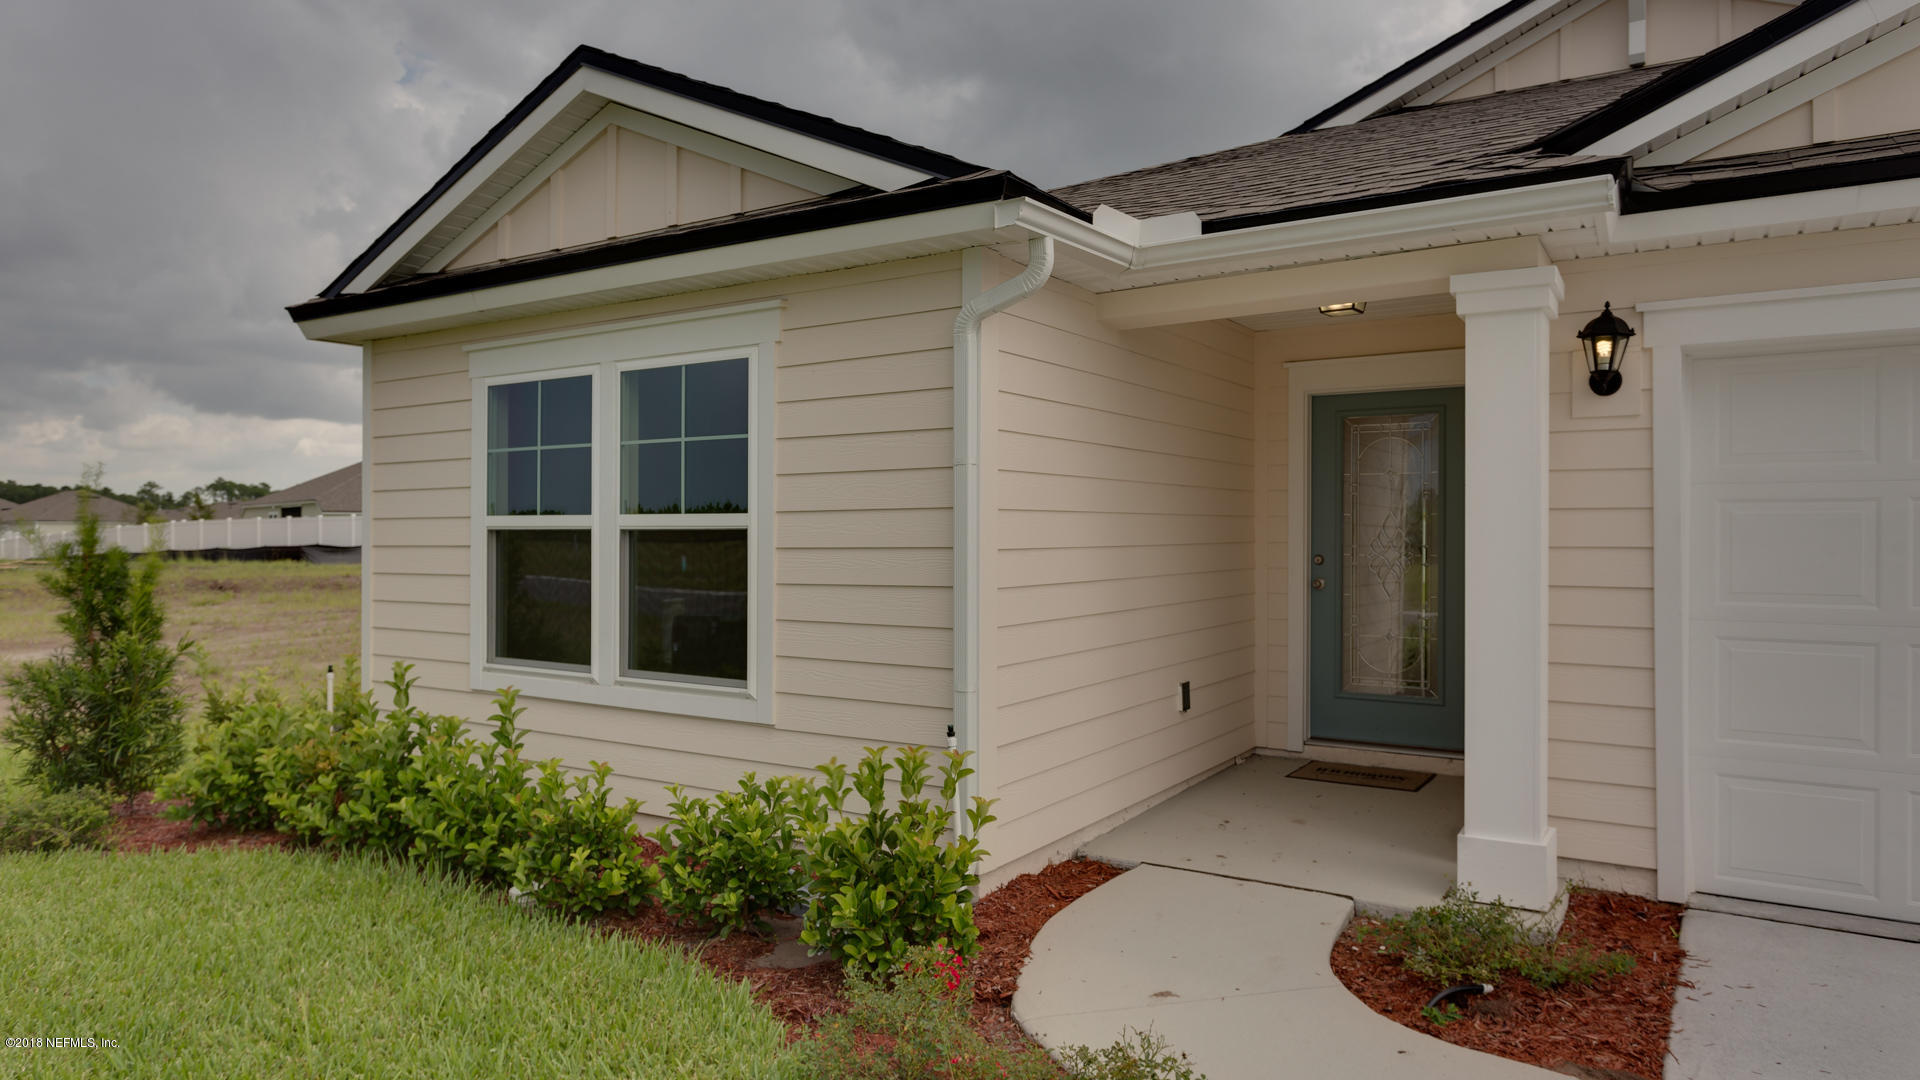 641 SEVILLE, ST AUGUSTINE, FLORIDA 32086, 3 Bedrooms Bedrooms, ,2 BathroomsBathrooms,Residential - single family,For sale,SEVILLE,916985